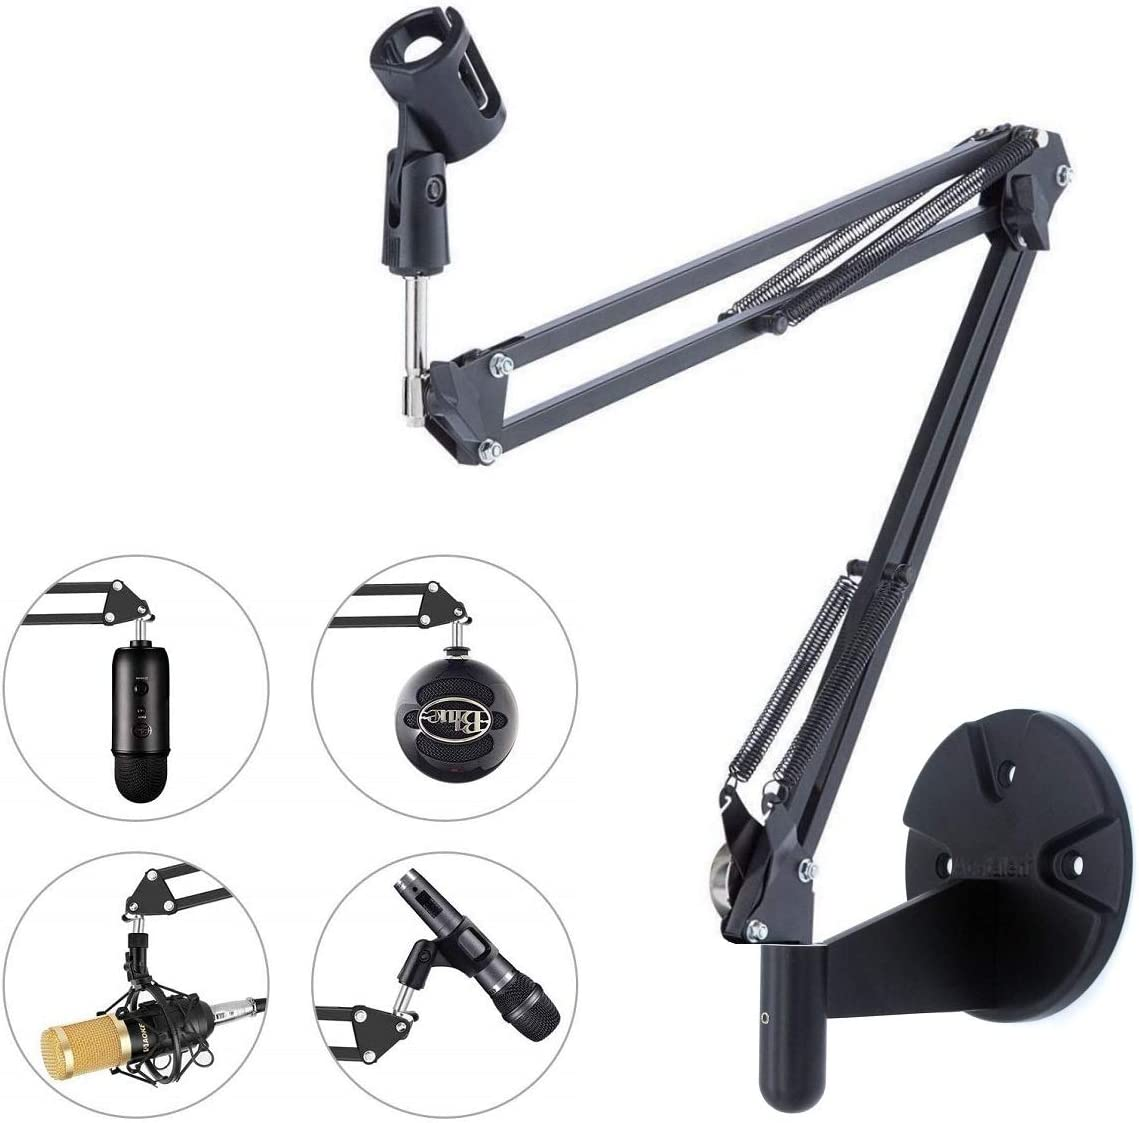 Microphone Wall Mount, Suspension Mic Stand Clip for Blue Yeti Snowball,Radio Broadcasting, Voice-Over Sound, Stages,TV Stations,Youtube